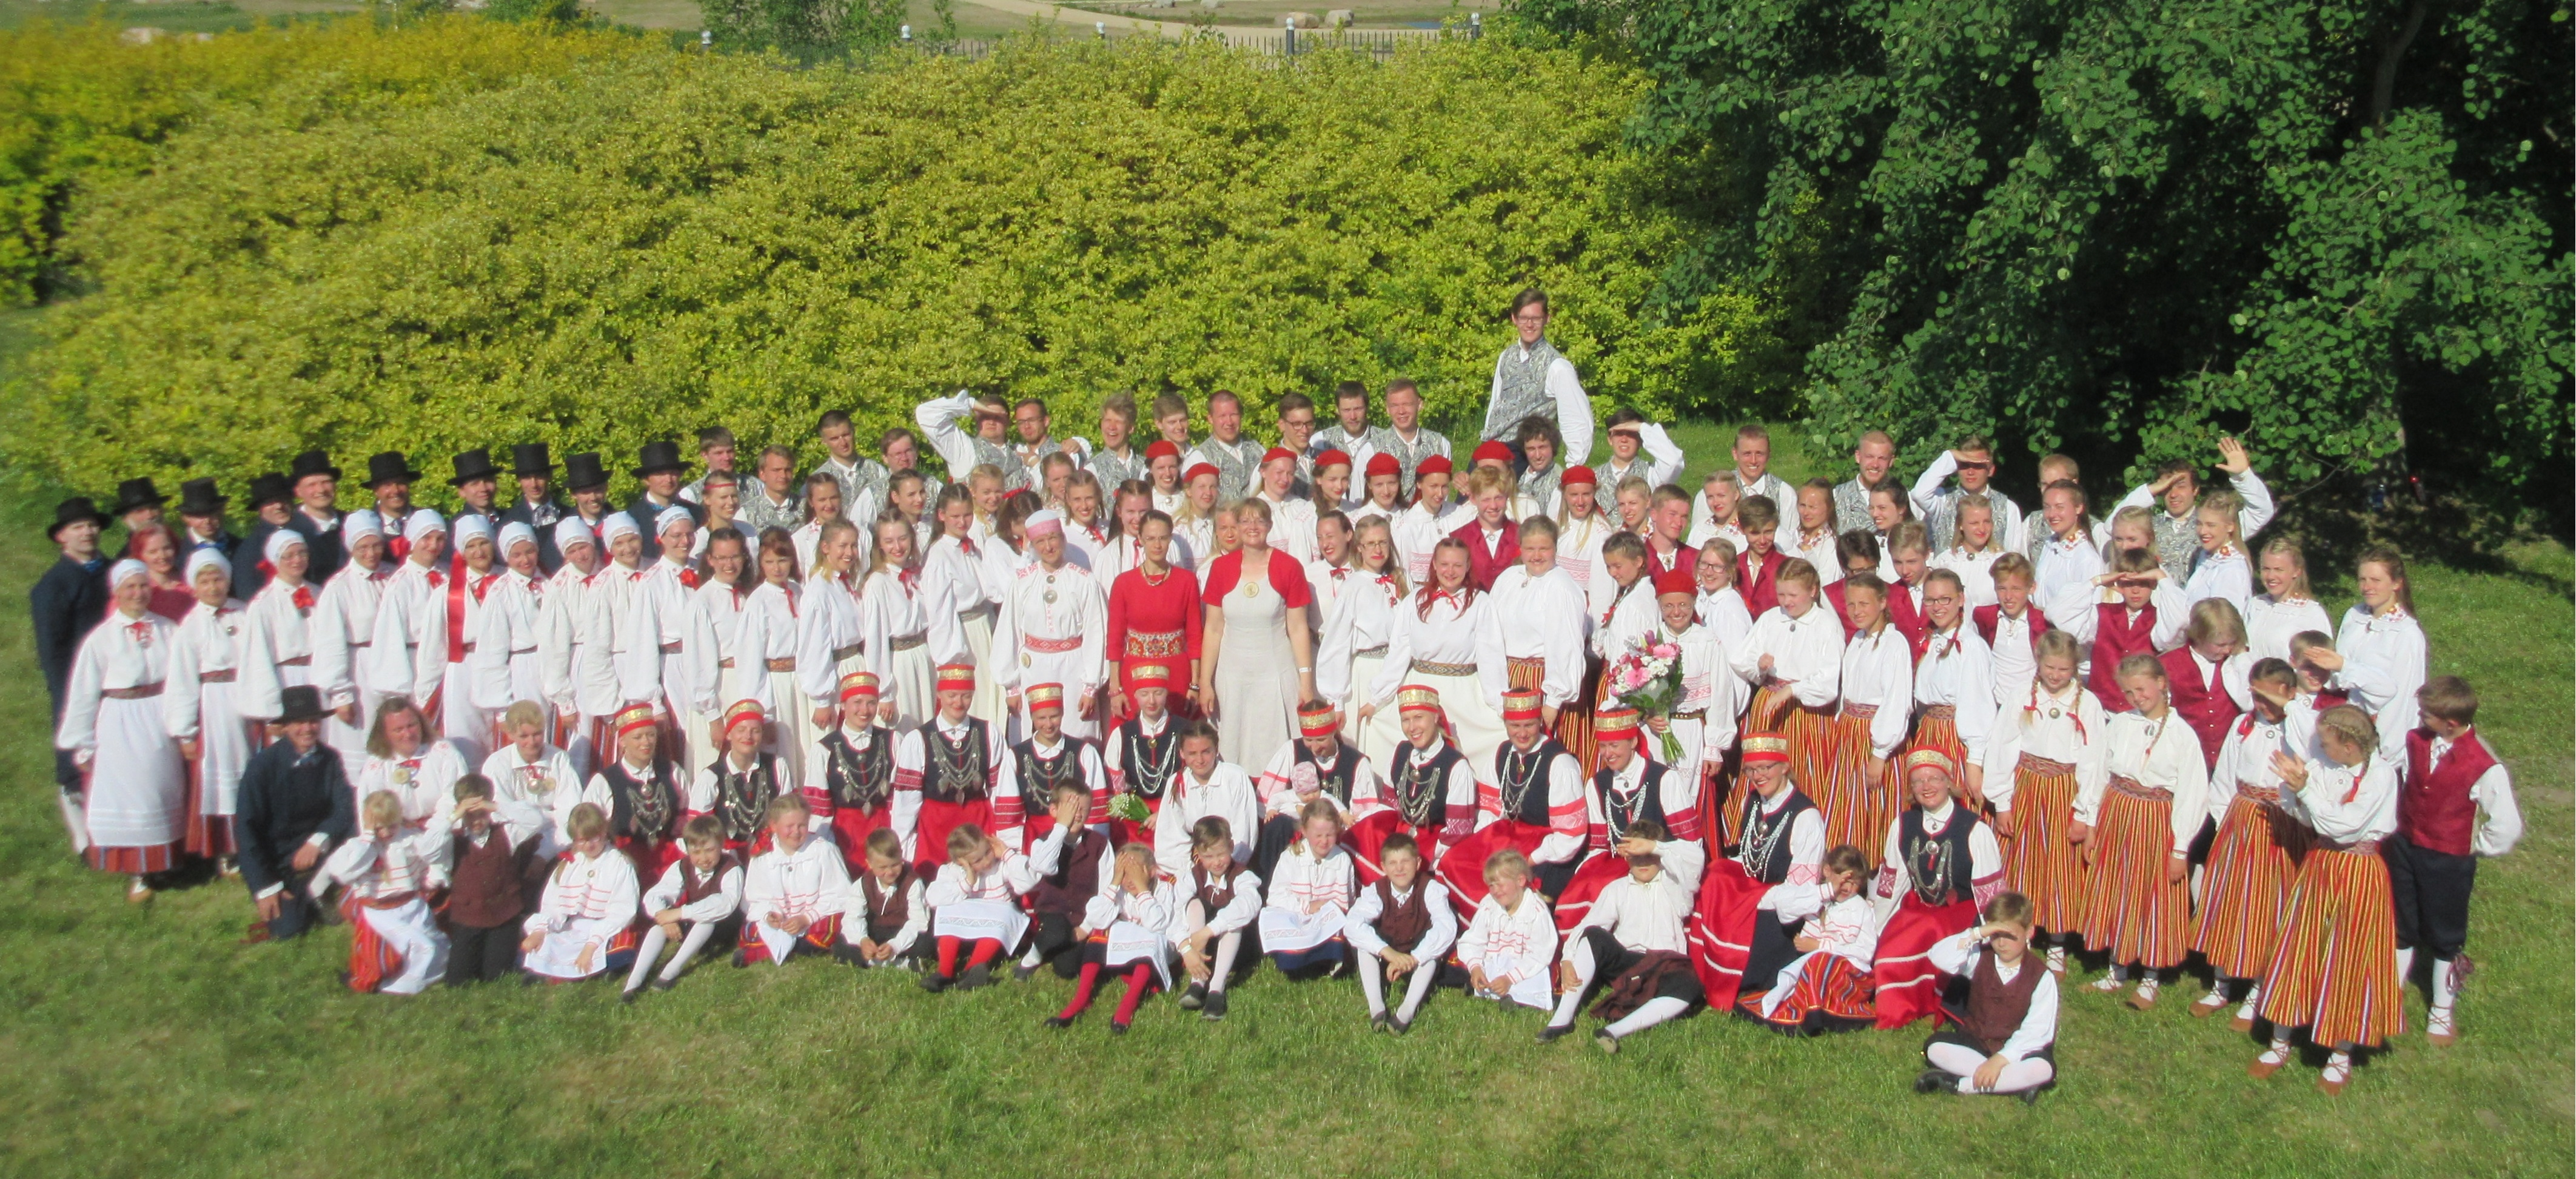 All members of Folk Dance Ensemble of Tartu University at Tartu county folk dance festival in May 2016